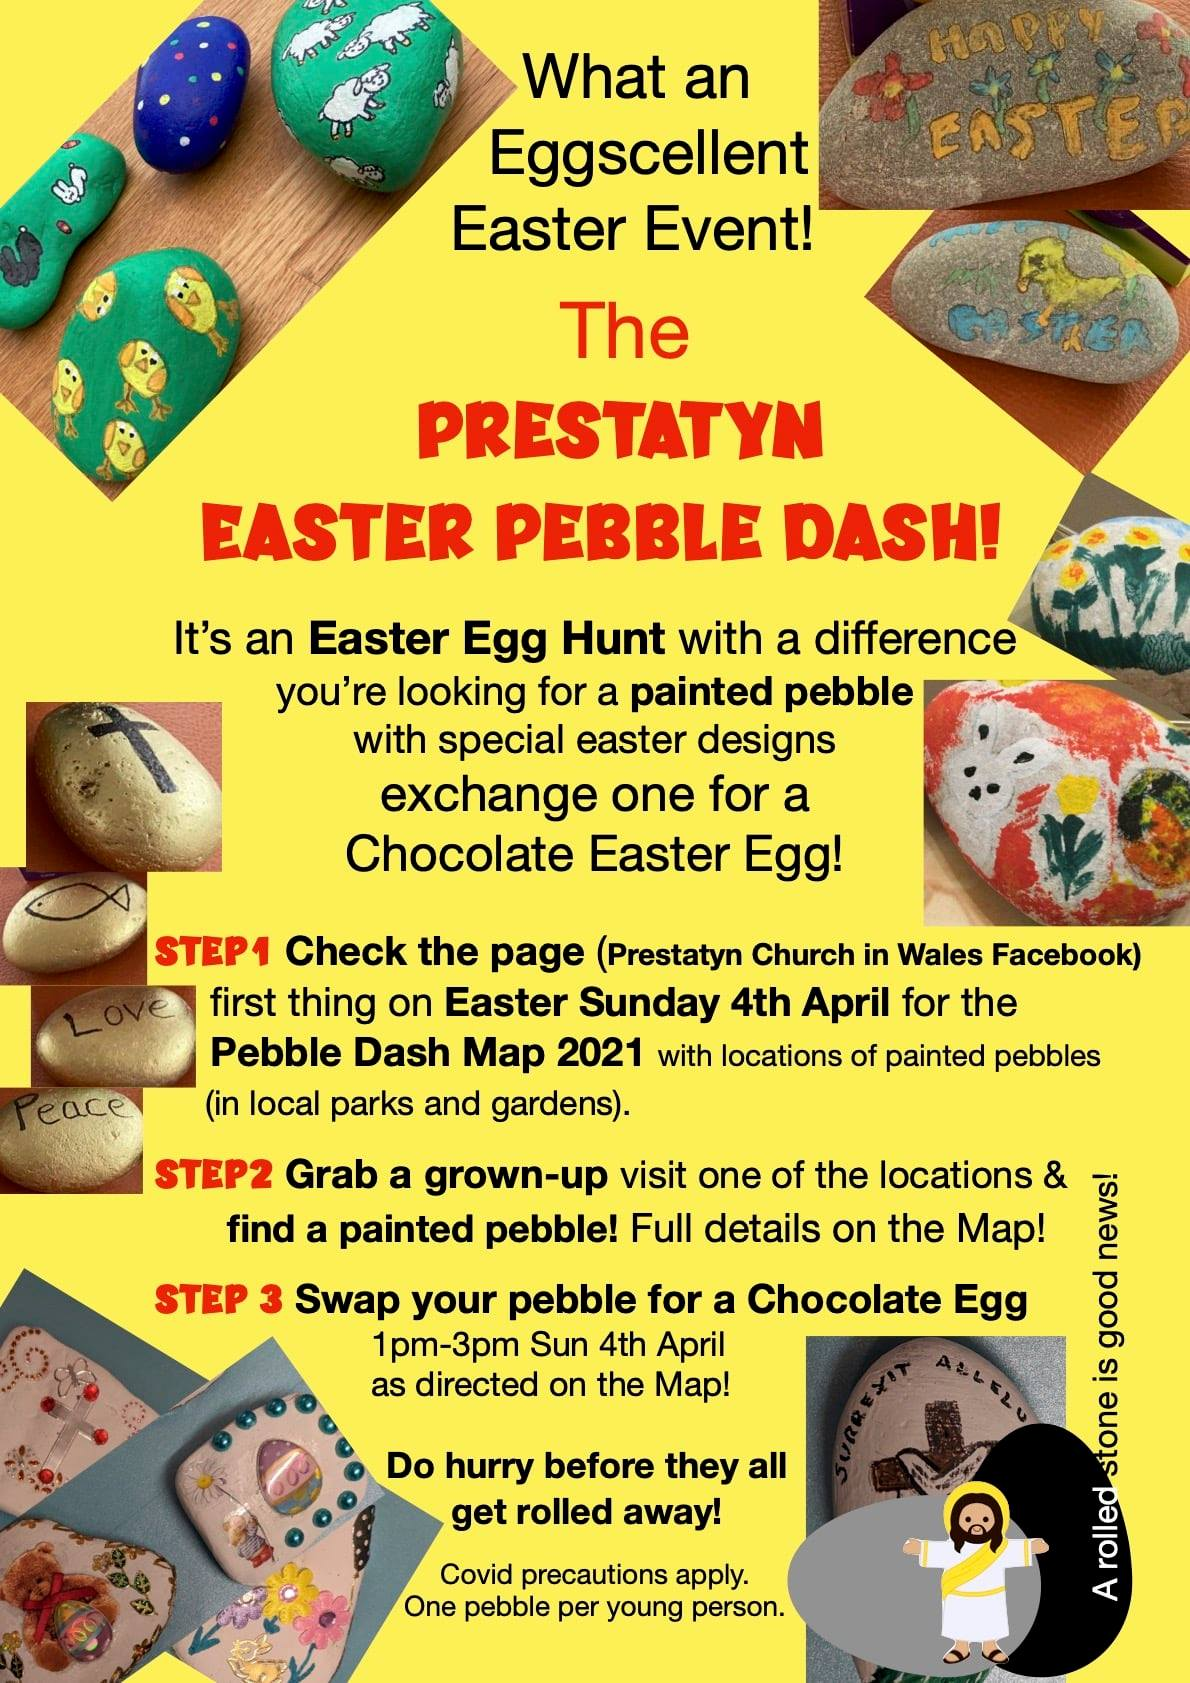 "Yellow background with images. Text reads: ""What an Eggscellent Easter Event! The Prestatyn Easter Pebble Dash!  It's an Easter Egg Hunt with a difference. You're looking for a painted pebble  with special easter designs. Exchange one for a Chocolate Easter Egg!  Step 1: Check the page (Prestatyn Church In Wales Facebook) first thing on Easter Sunday 4th April for the Pebble Dash Map 2021 with locations of painted pebbles (in local parks and gardens). Step 2: Grab a grown-up. Visit one of the locations and find a painted pebble! Full details on the Map!  Step 3: Swap your pebble for a Chocolate Egg. 1pm - 3pm Sun 4th April as directed on the Map!  Do hurry before they get rolled away!  (Covid precautions apply. one pebble per young person.)"""